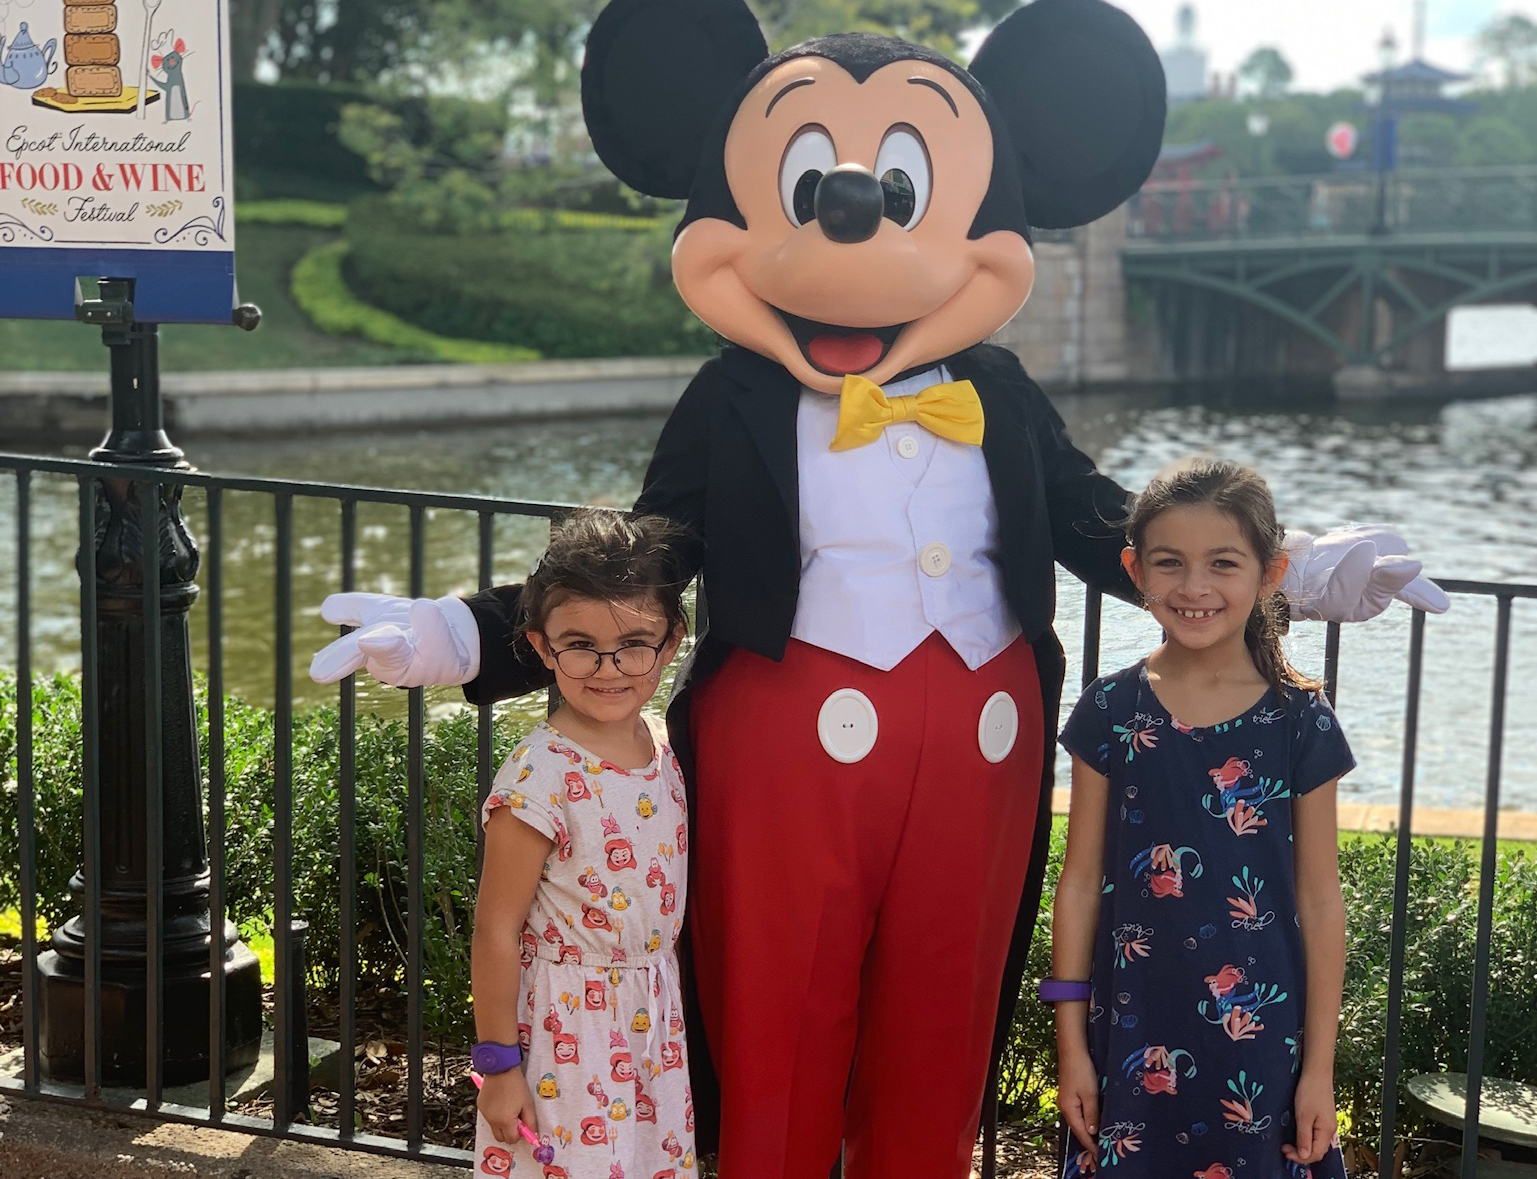 Top ten things every parent should know before going to Disney World